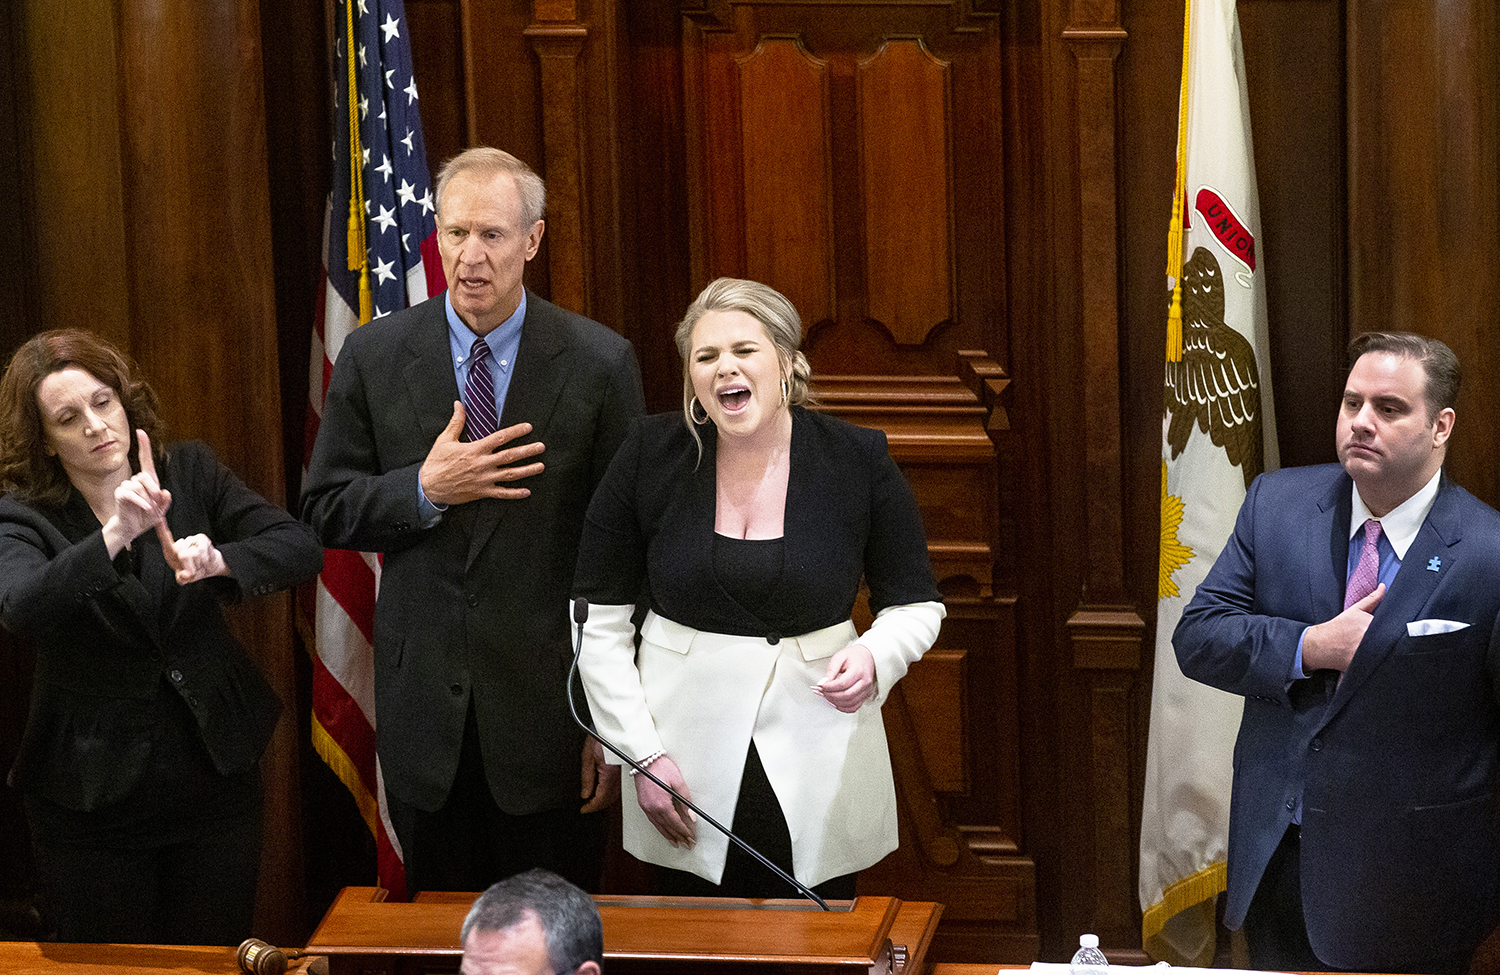 Chel Sgro, with Gov. Bruce Rauner and Senate Parliamentarian Giovanni Randazzo, right, sings the national anthem before the inauguration of the Illinois State Senate of the 101st General Assembly Wednesday, Jan. 9, 2019 at the Capitol in Springfield, Ill. Christine Lansaw, left, interprets in sign language. [Rich Saal/The State Journal-Register]